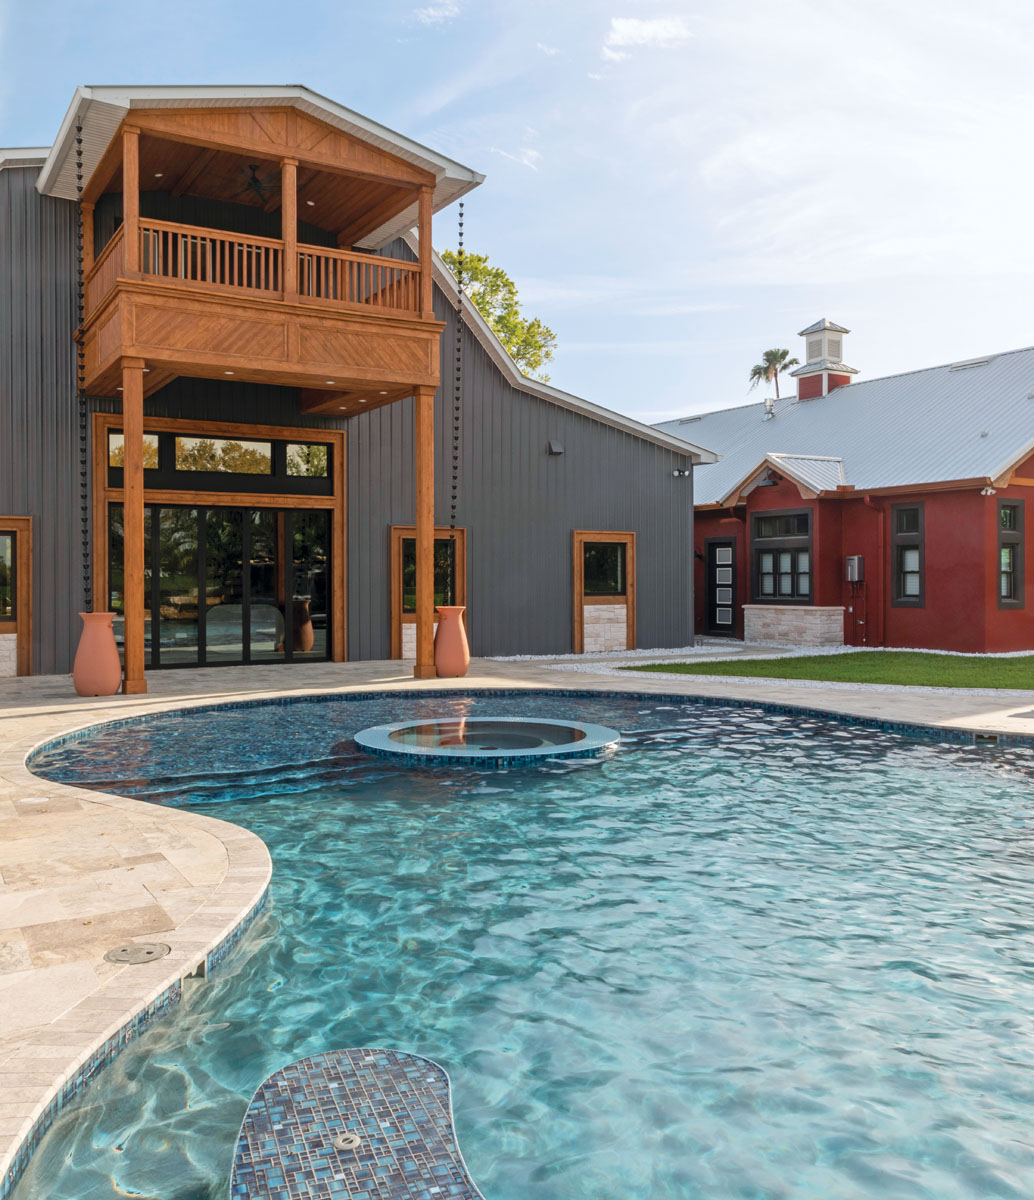 When you frequently entertain large crowds, it's important to go with the flow. Folding glass doors on the back of the house make it easy for the Jimenezes to extend the living space to the pool and pavilion.